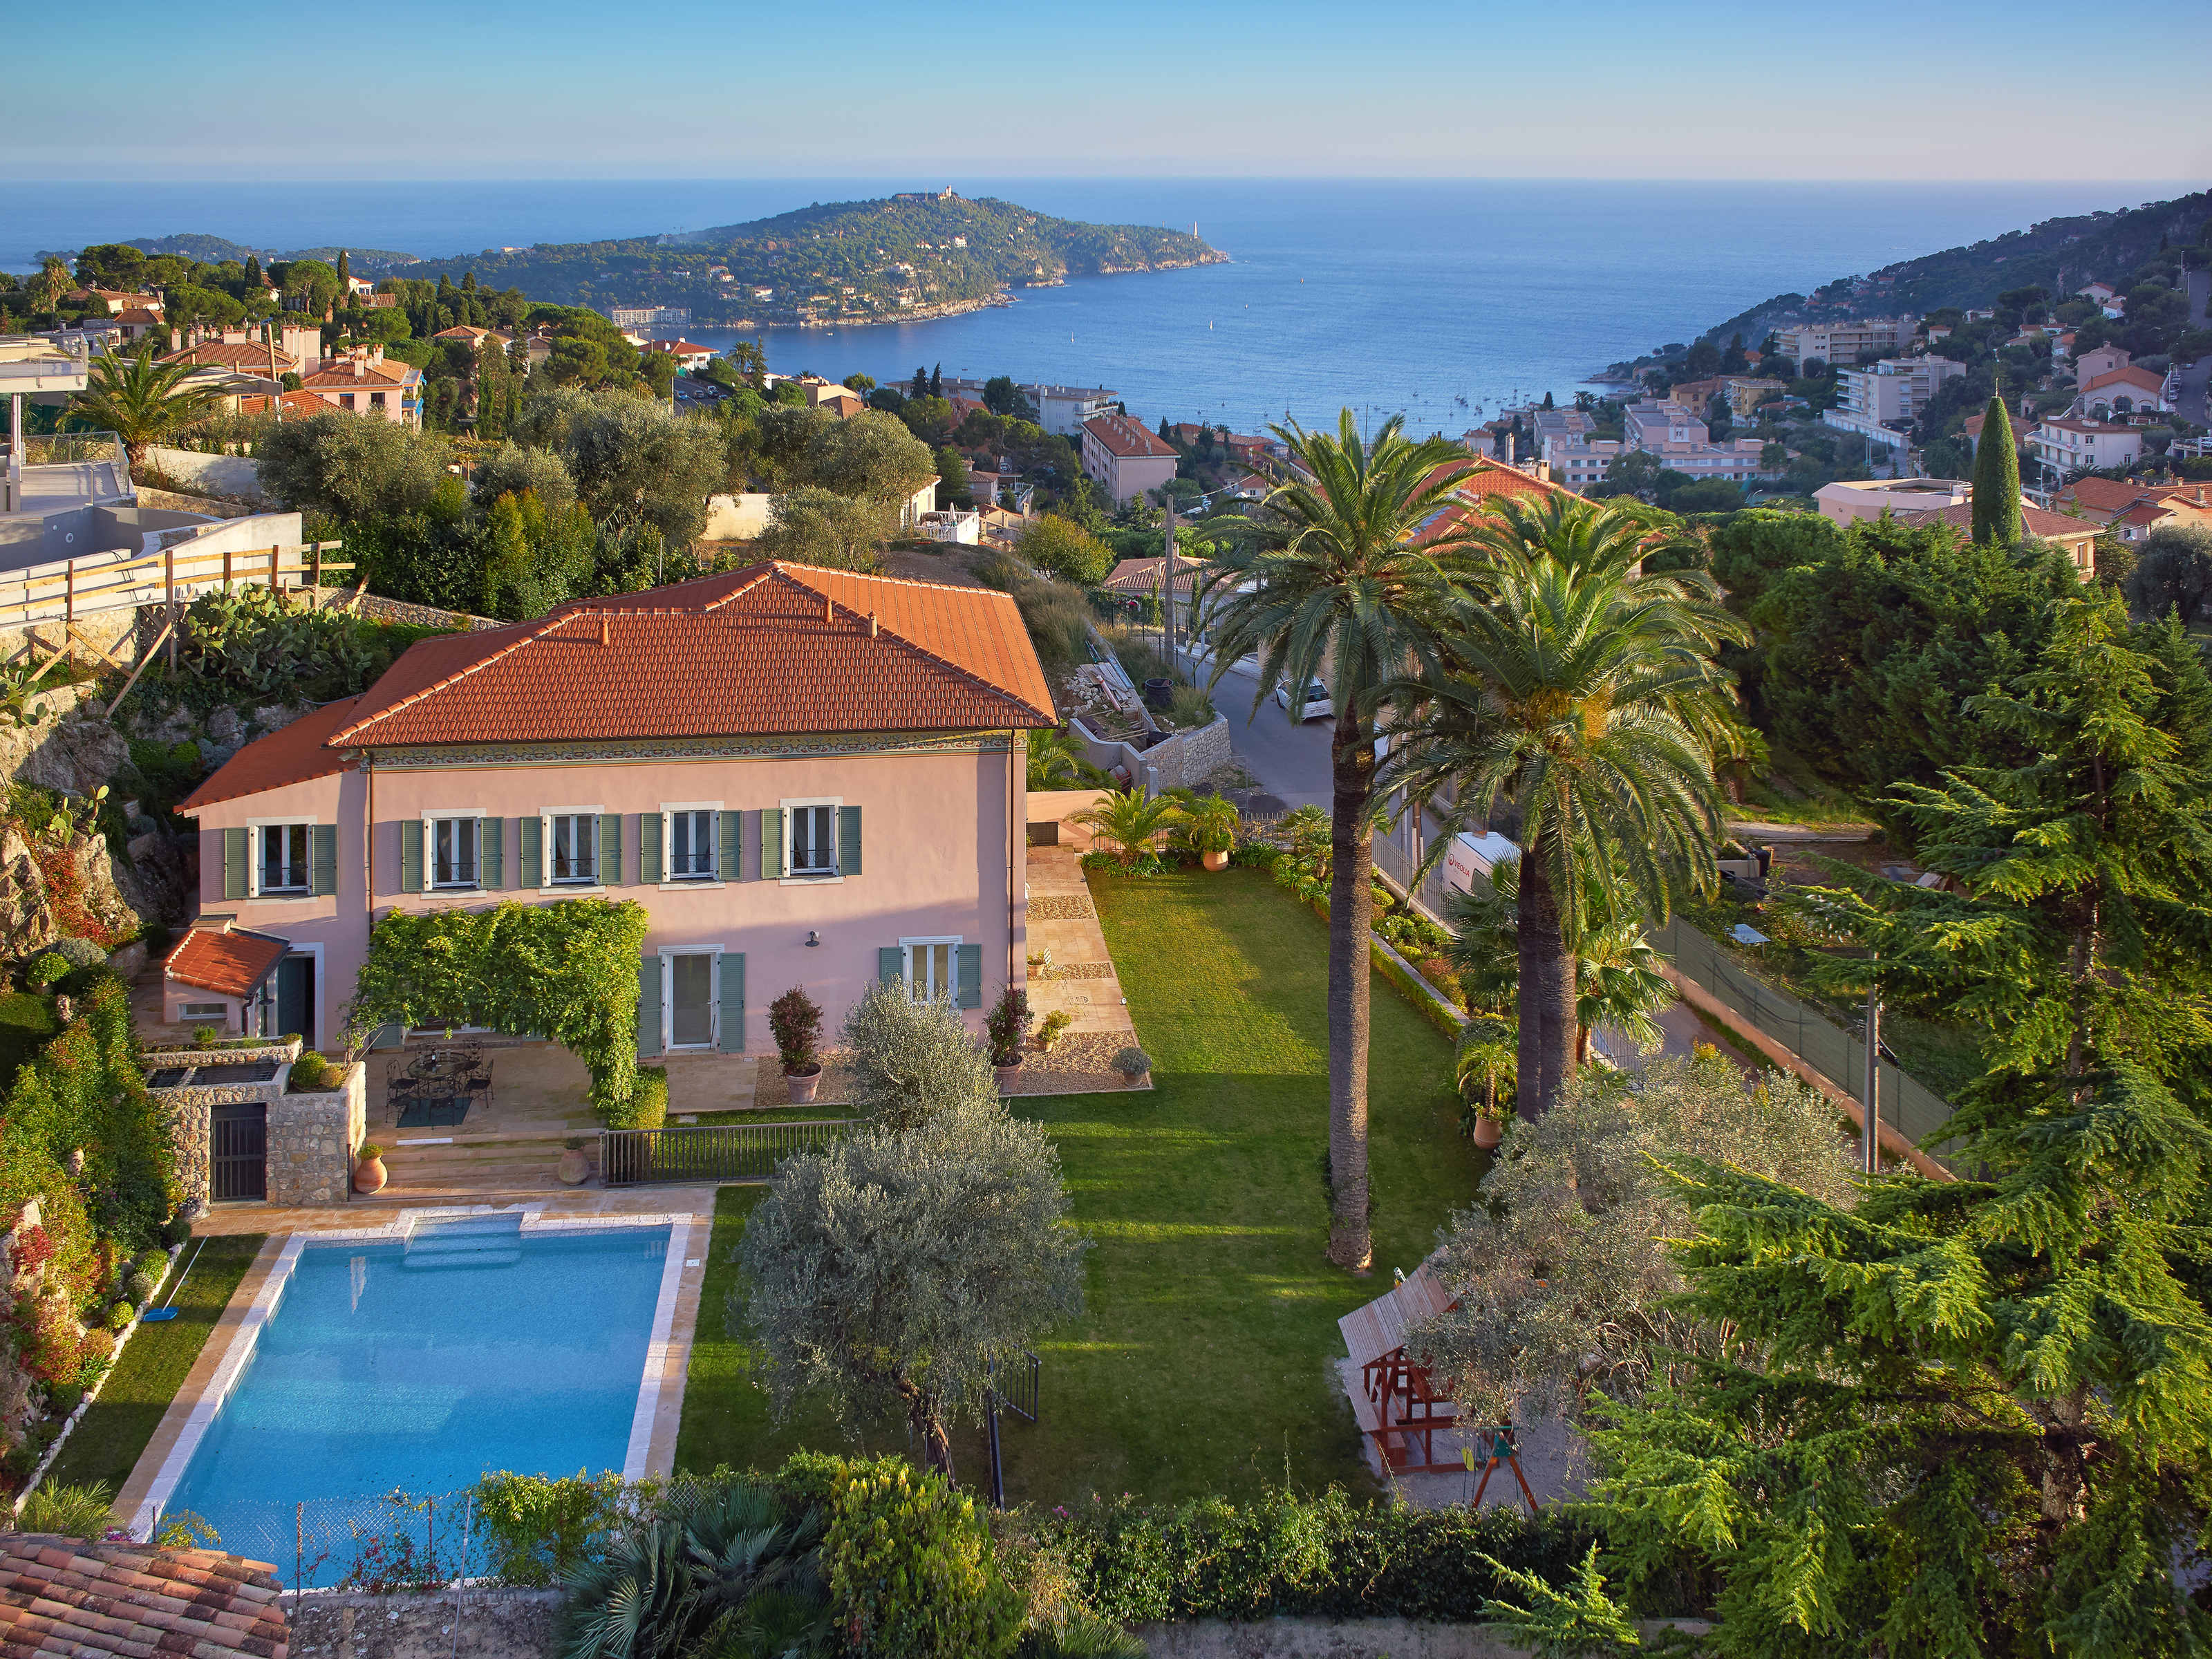 Other Residential for Sale at Beautiful renovated villa 300sqm with landscape garden and sea views Nice, Provence-Alpes-Cote D'Azur 06300 France